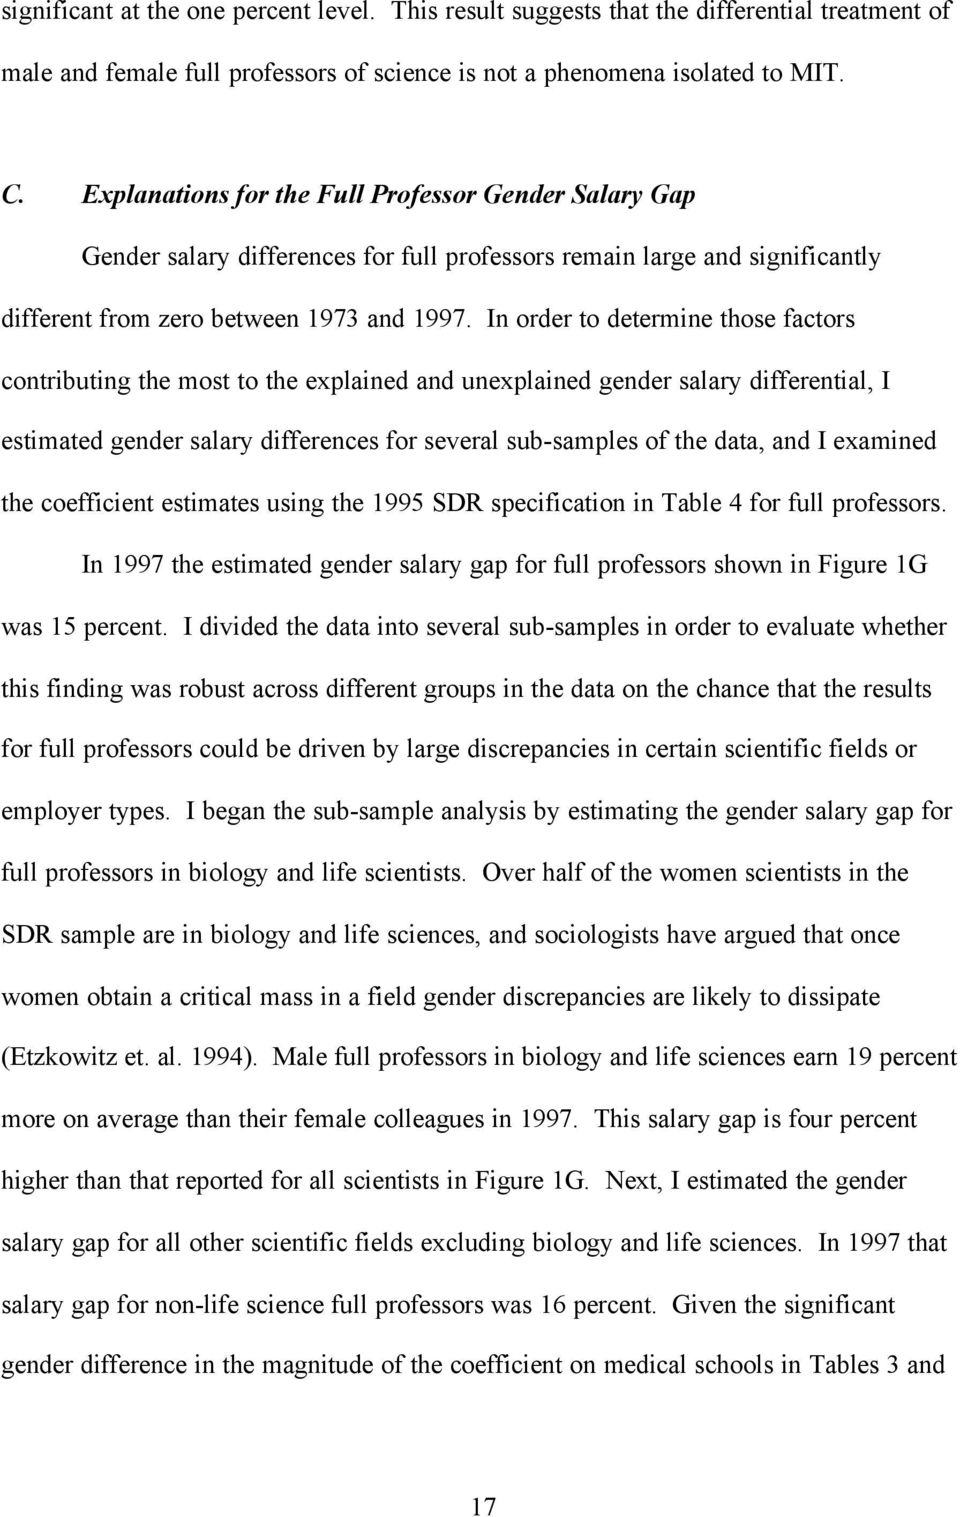 In order to determine those factors contributing the most to the explained and unexplained gender salary differential, I estimated gender salary differences for several sub-samples of the data, and I